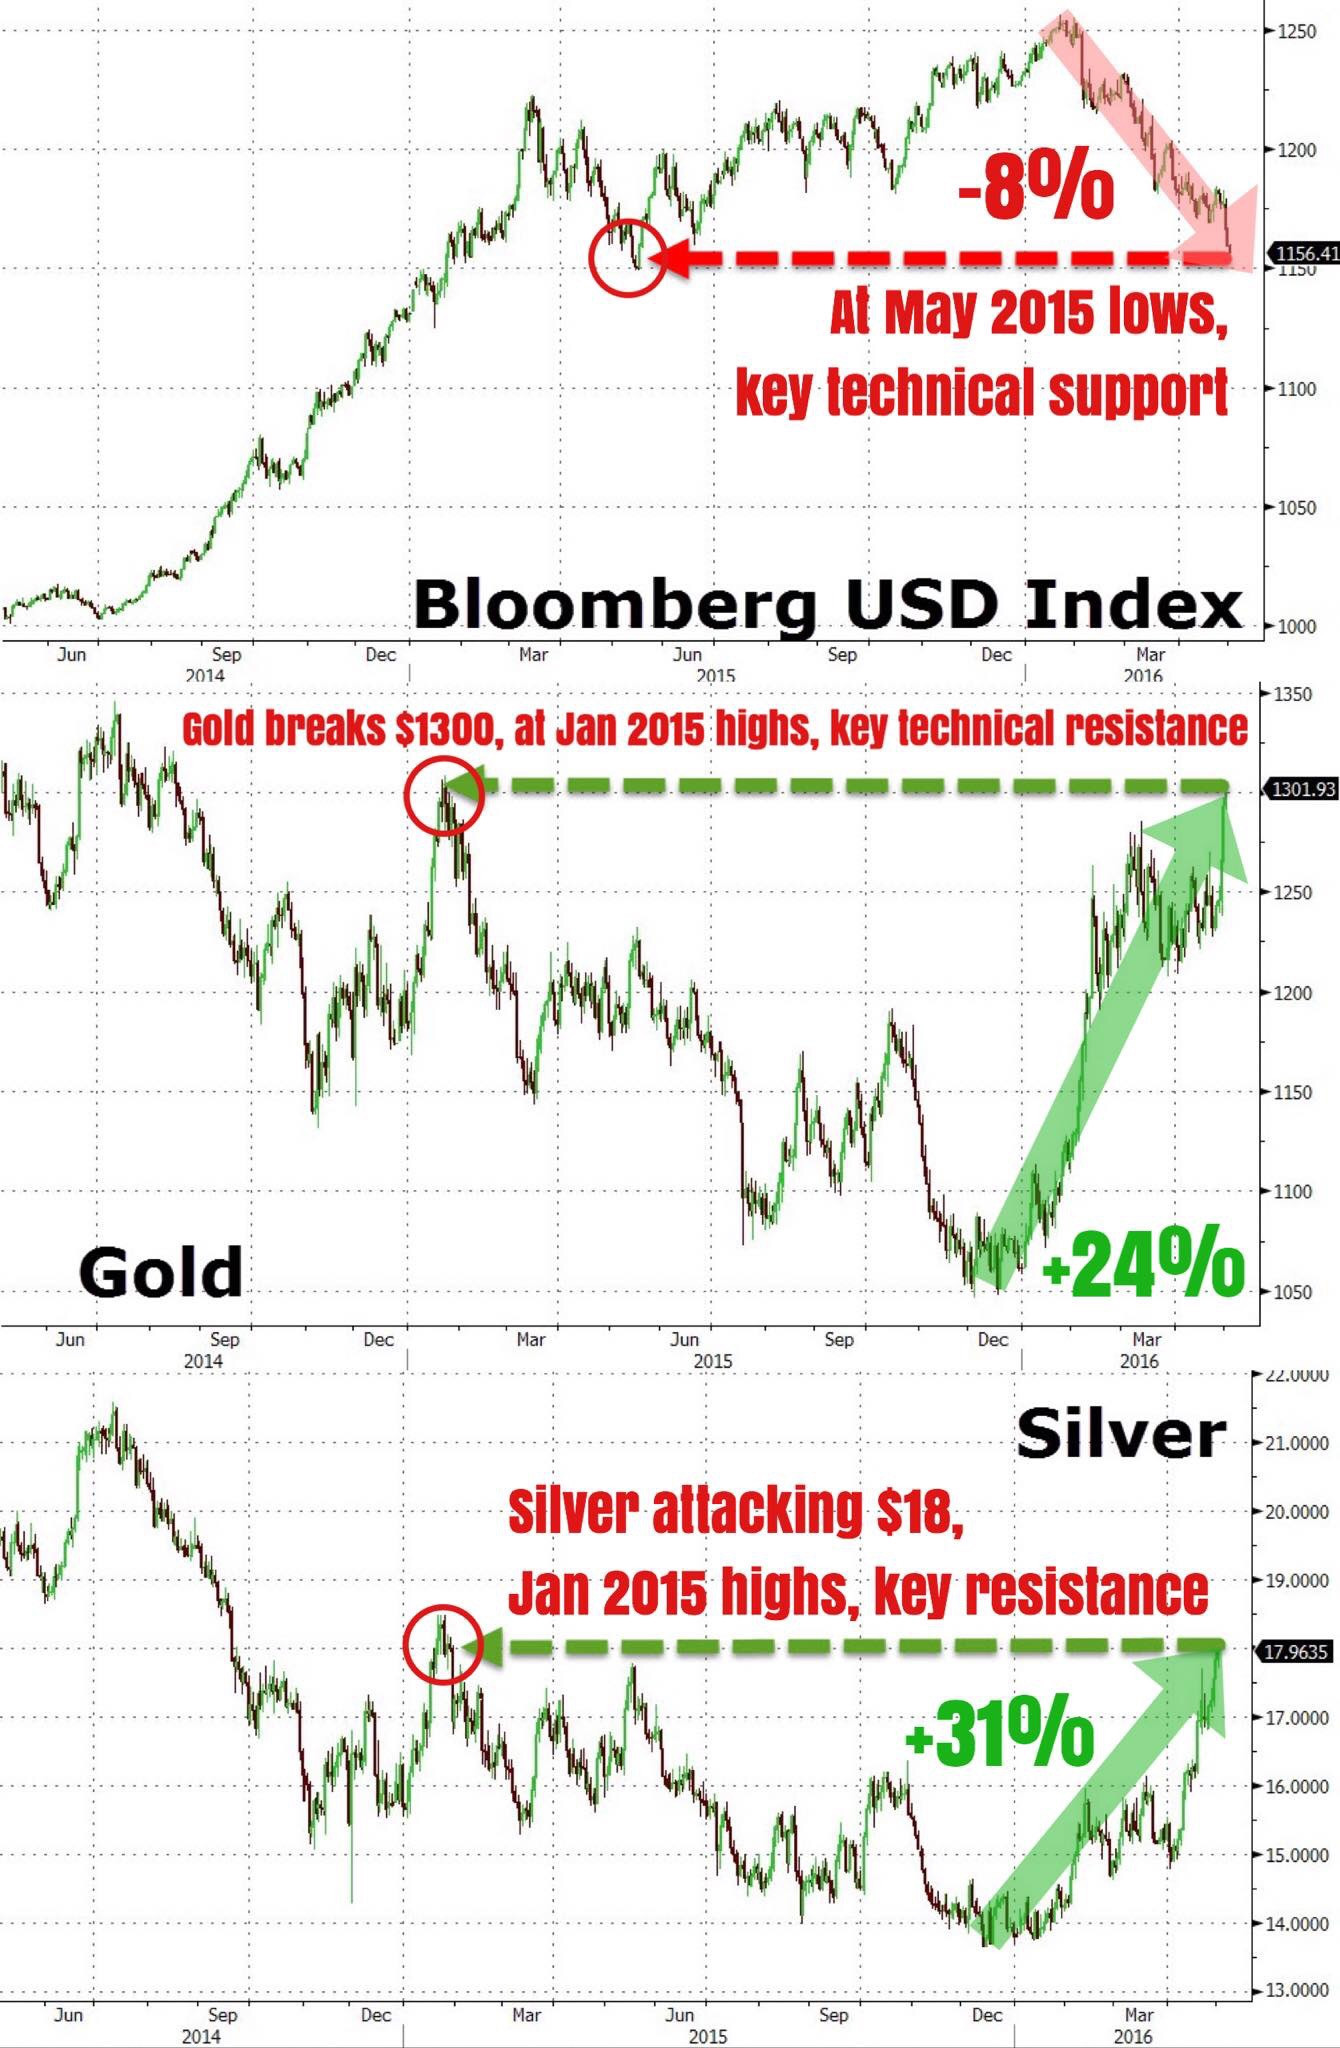 """""""While we have been writing extensively on the weakness of the U.S. dollar and resulting strength in commodities such as the precious metals (gold, silver, platinum), we can not give less of a damn when it comes to being realistic. Now is the time to be realistic, we feel.    Just on the technical side of the market (price action and market structure), the DXY (U.S. Dollar Index) is currently at its May 2015 lows which is a key technical support area. Gold and silver are conversely at their January 2015 highs which are both key technical resistance areas. Gold managed to trade briefly above the key psychological big figure of $1300.    Since their respective inflection points, the DXY is down -8%, gold up +24%, and silver +31%. These are some seriously big numbers that were talking about. 8% is a huge deal for a currency index, for the lesser learned of you.    We also note that positioning data indicates that large speculators (momentum chasers) are heavily long gold and silver, and have turned net short the DXY for the first time since 2012 (the most short USD in more than 3 years)...    We aren't bearish the precious metals or bullish the USD. In fact, if you've been following us, we have been advocating long exposures in the precious metals complex since early February, and have been shorting the USD since around the same time.    This is merely a heads up to traders and opportunistic folks, if you get what we mean. Trade accordingly...""""    Business Of Finance on Facebook, 2 May 2016"""